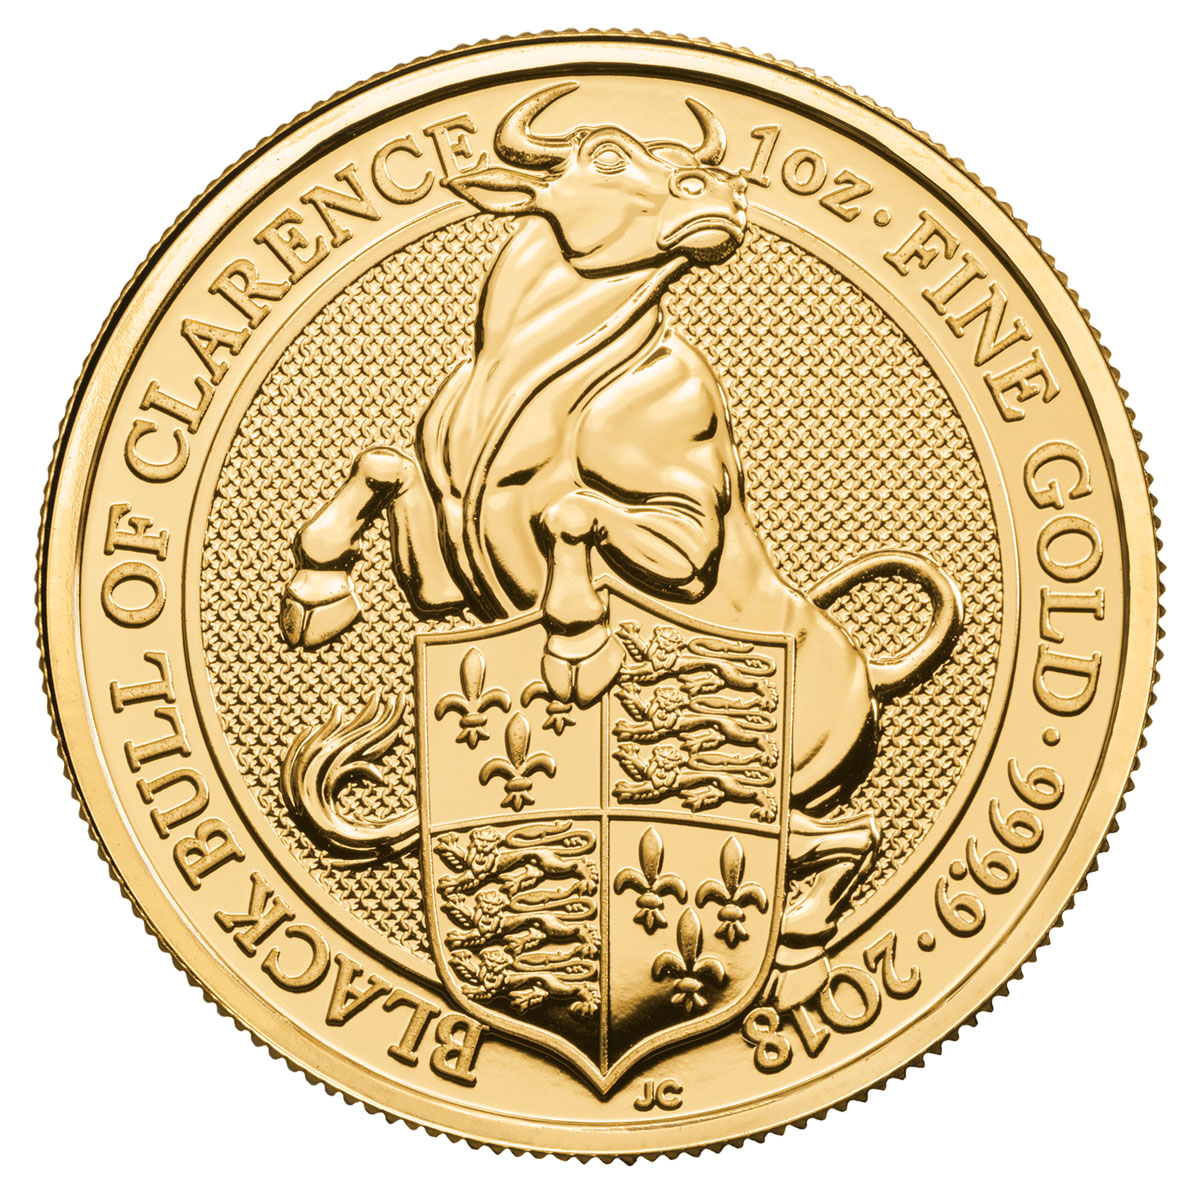 2018 Great Britain 1 oz Gold Queen's Beasts - The Black Bull of Clarence £100 Coin GEM BU